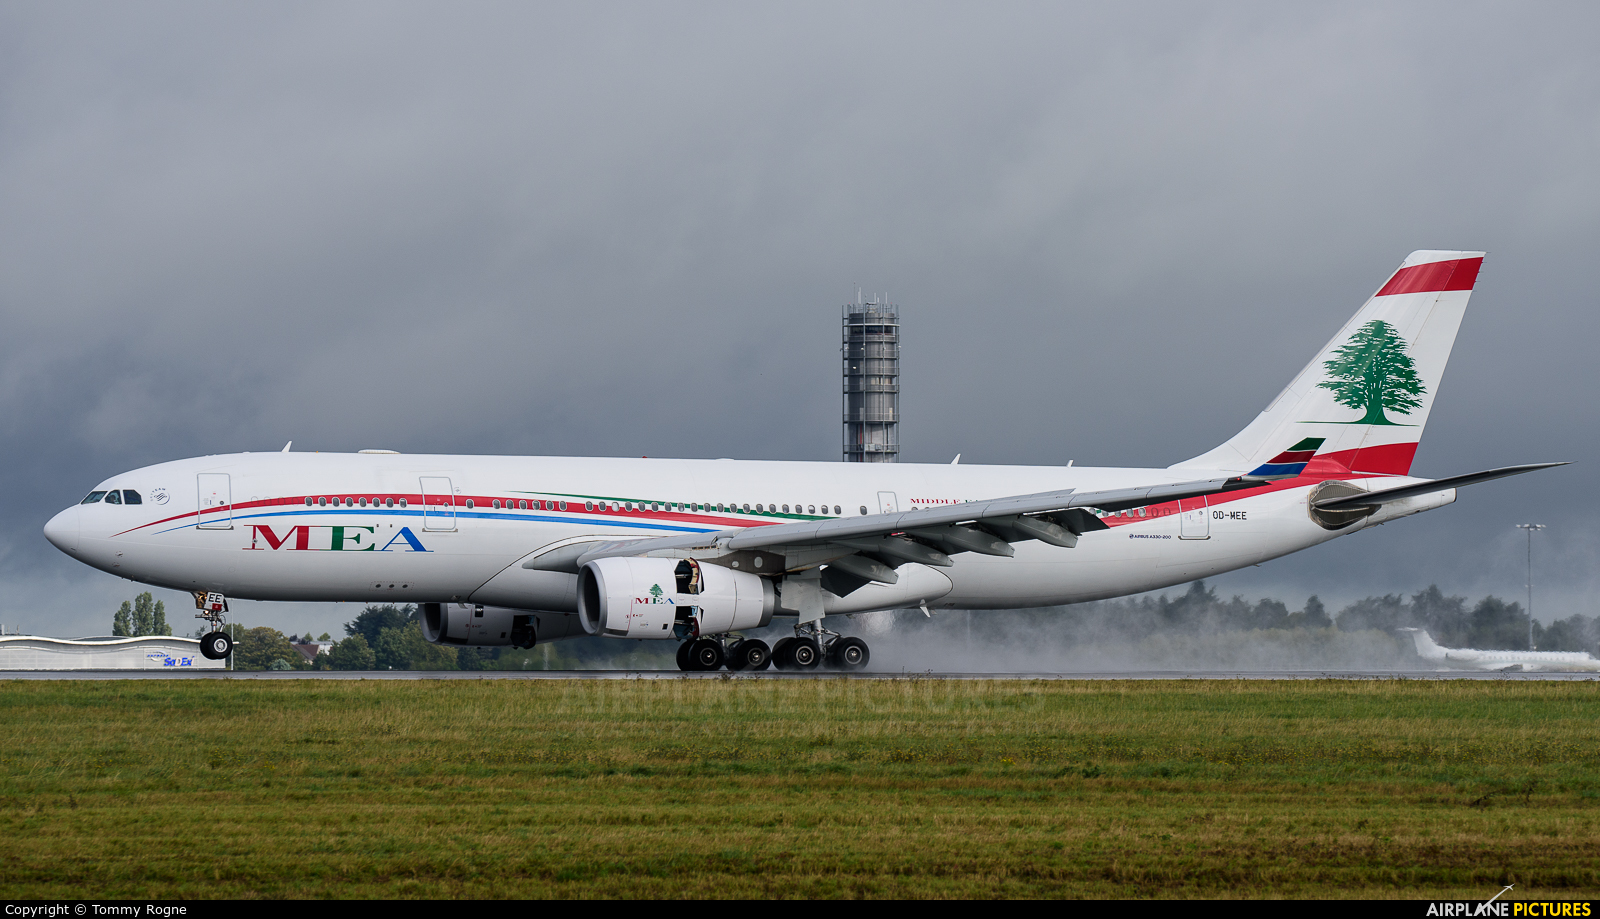 MEA - Middle East Airlines OD-MEE aircraft at Paris - Charles de Gaulle